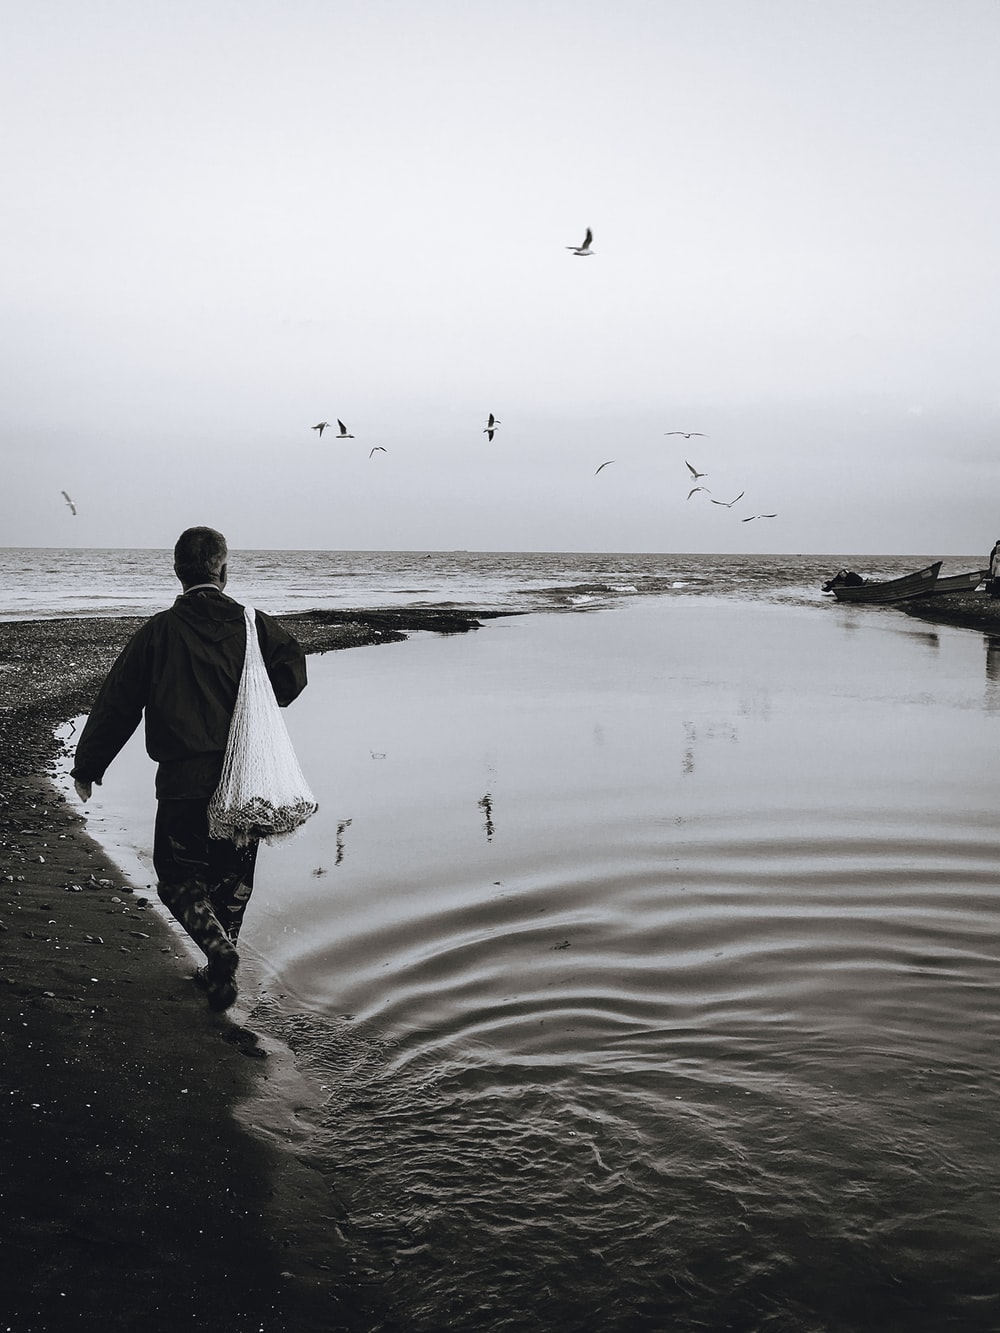 grayscale photography of man carrying plastic pack on back walking on water